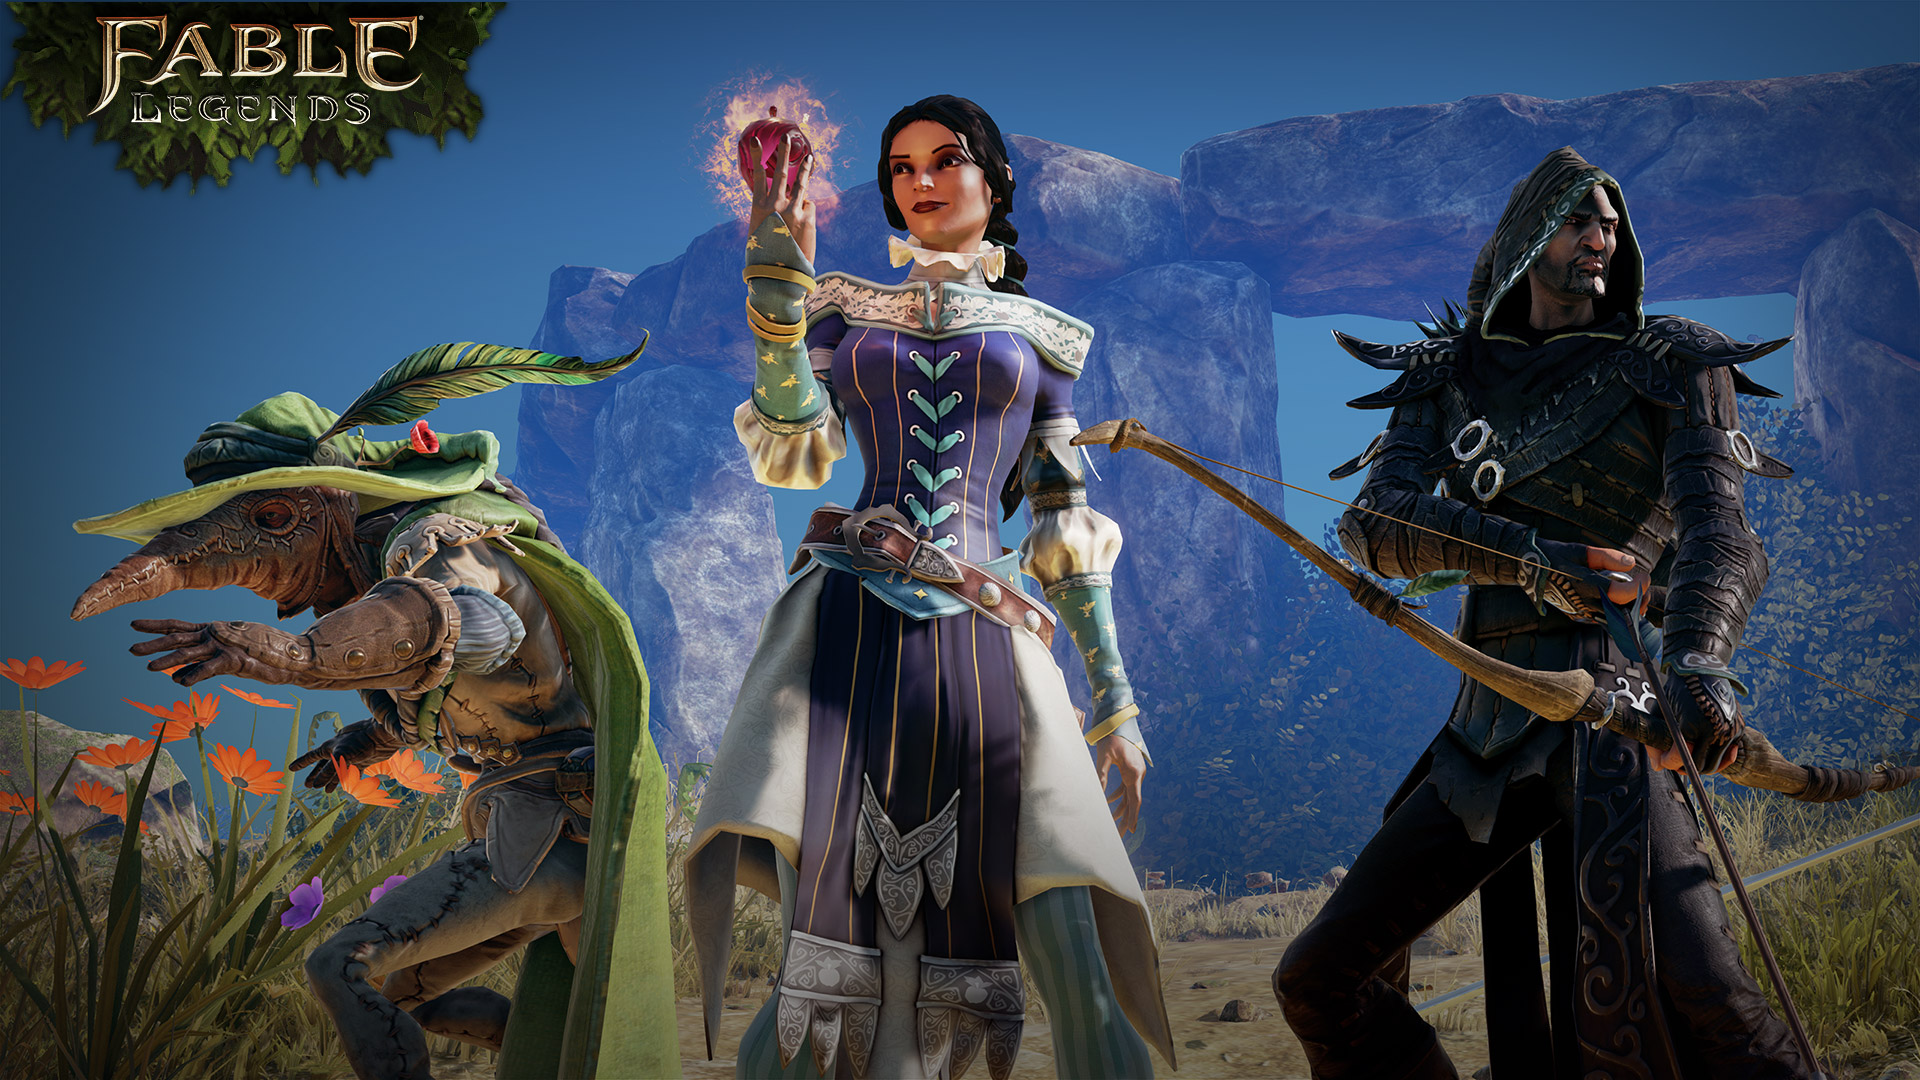 Free Fable Legends Wallpaper in 1920x1080